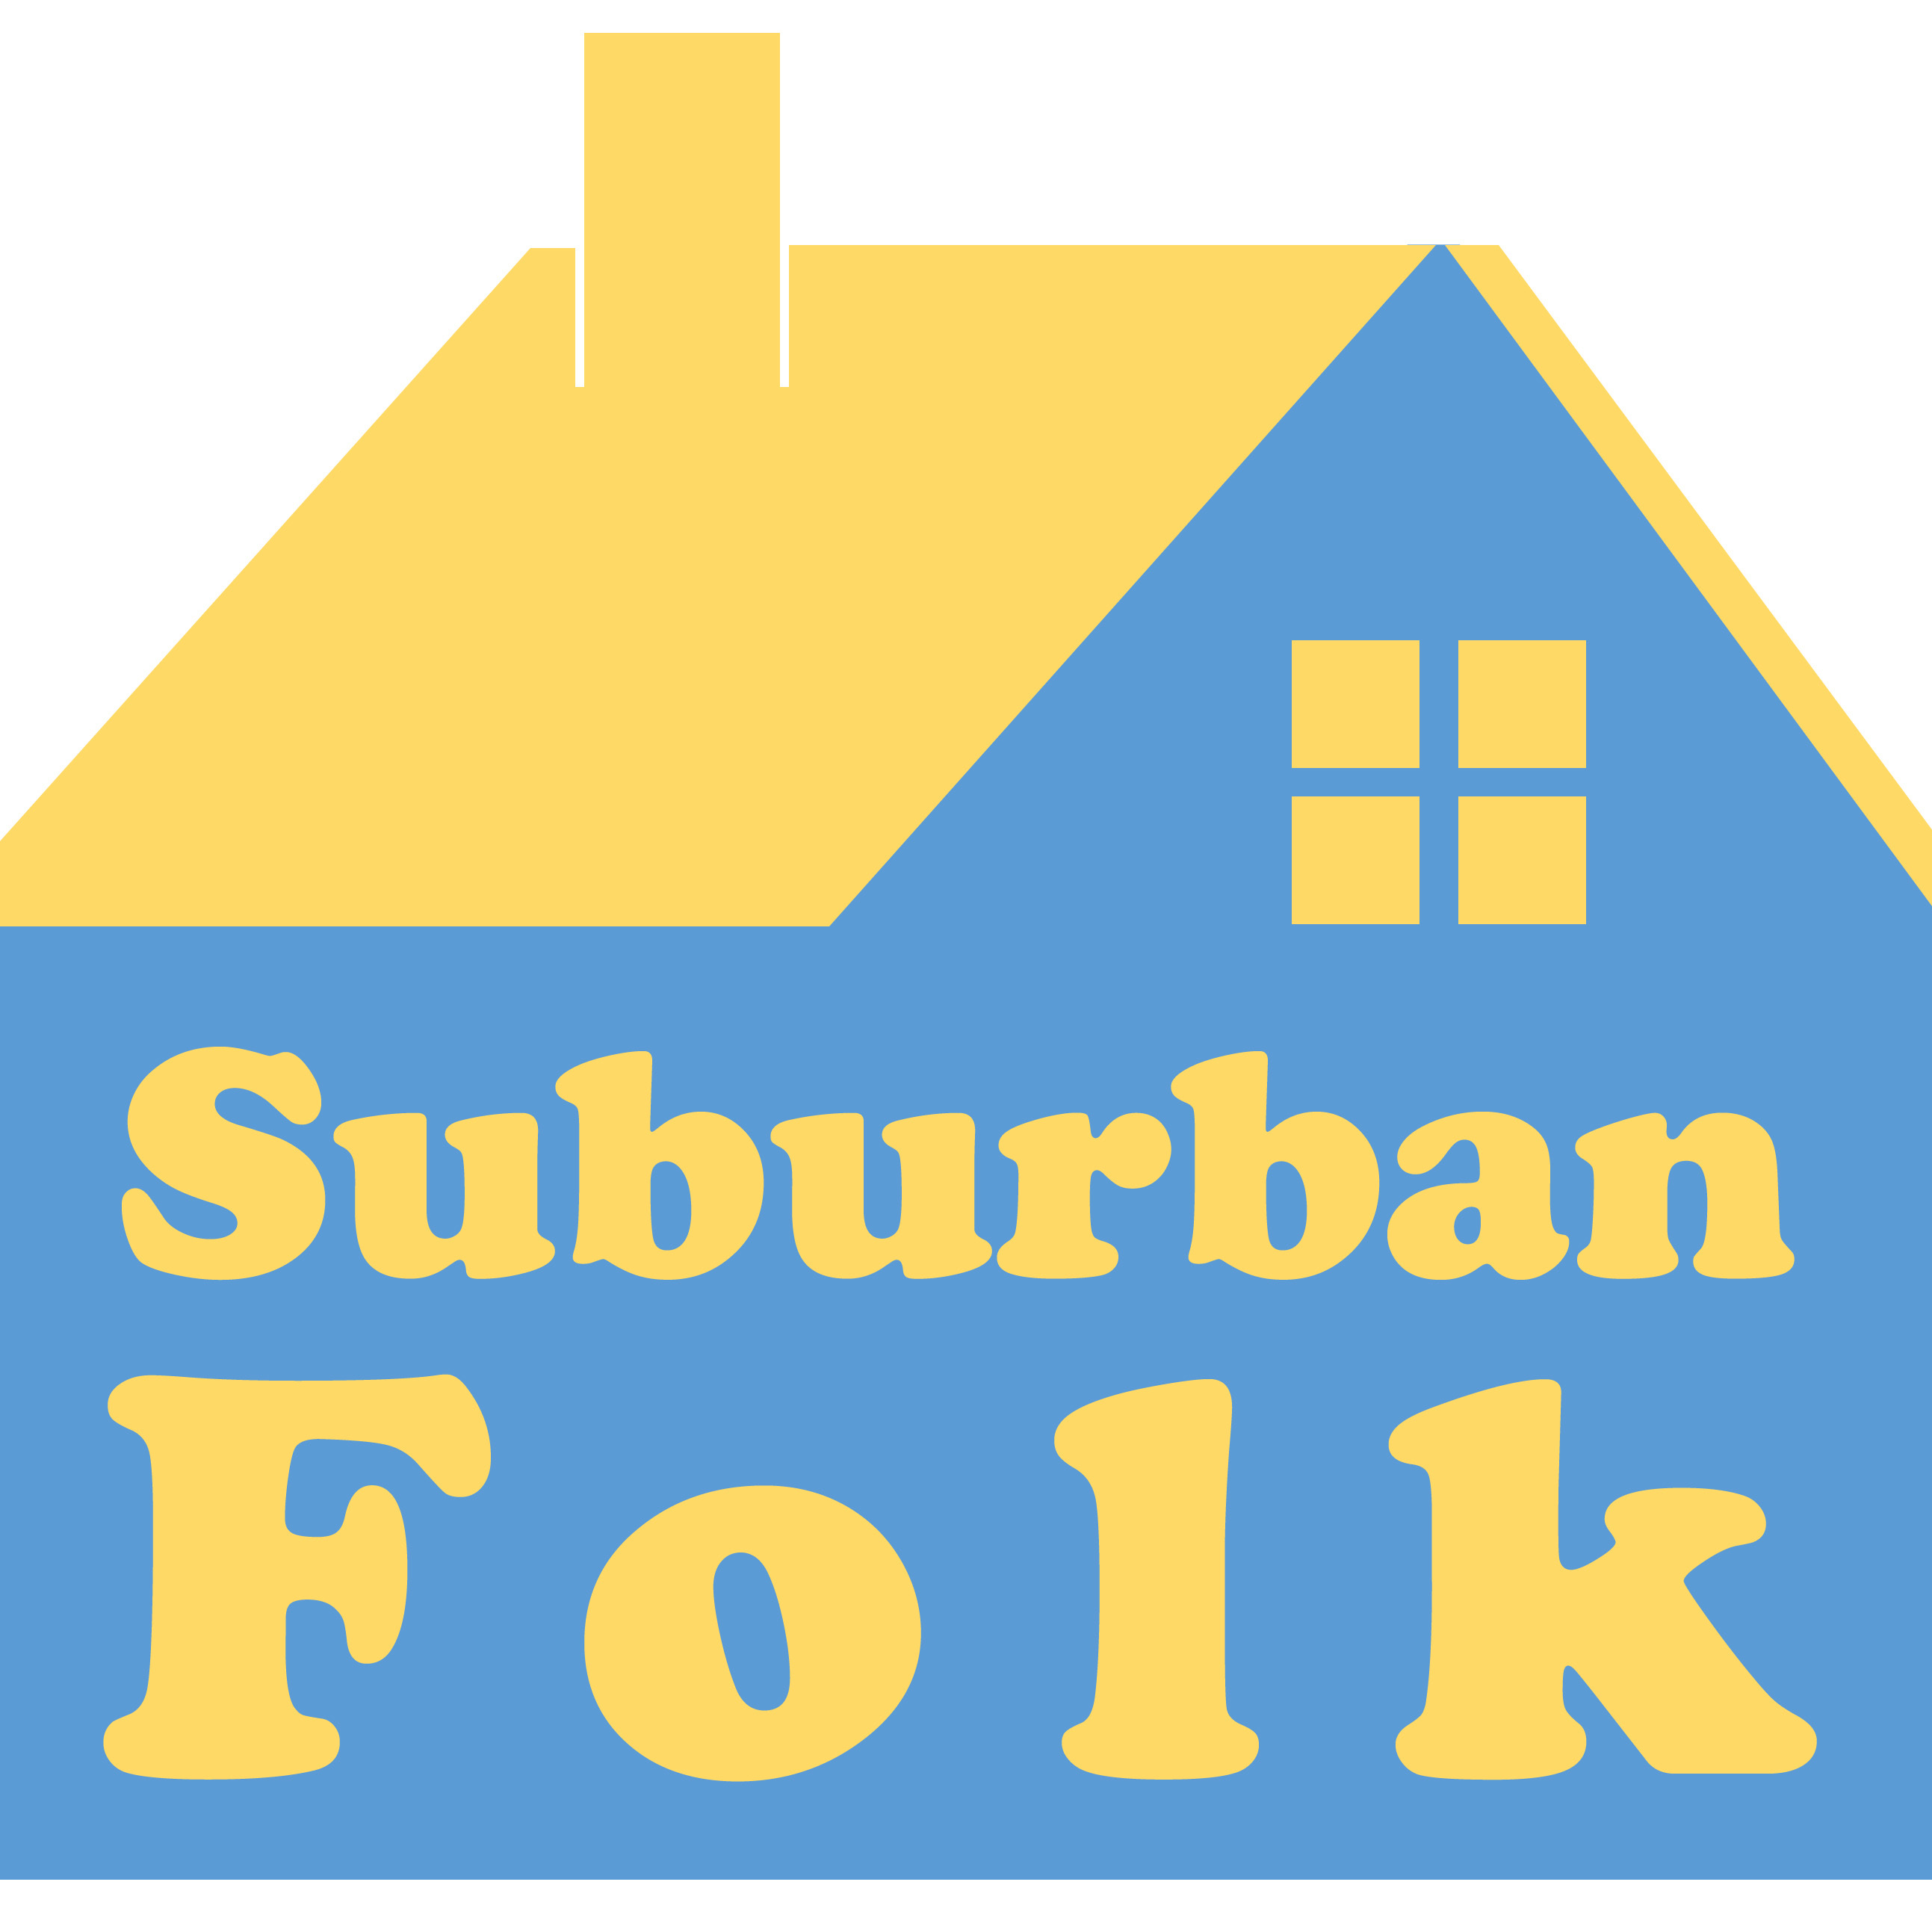 Suburban Folk podcast logo